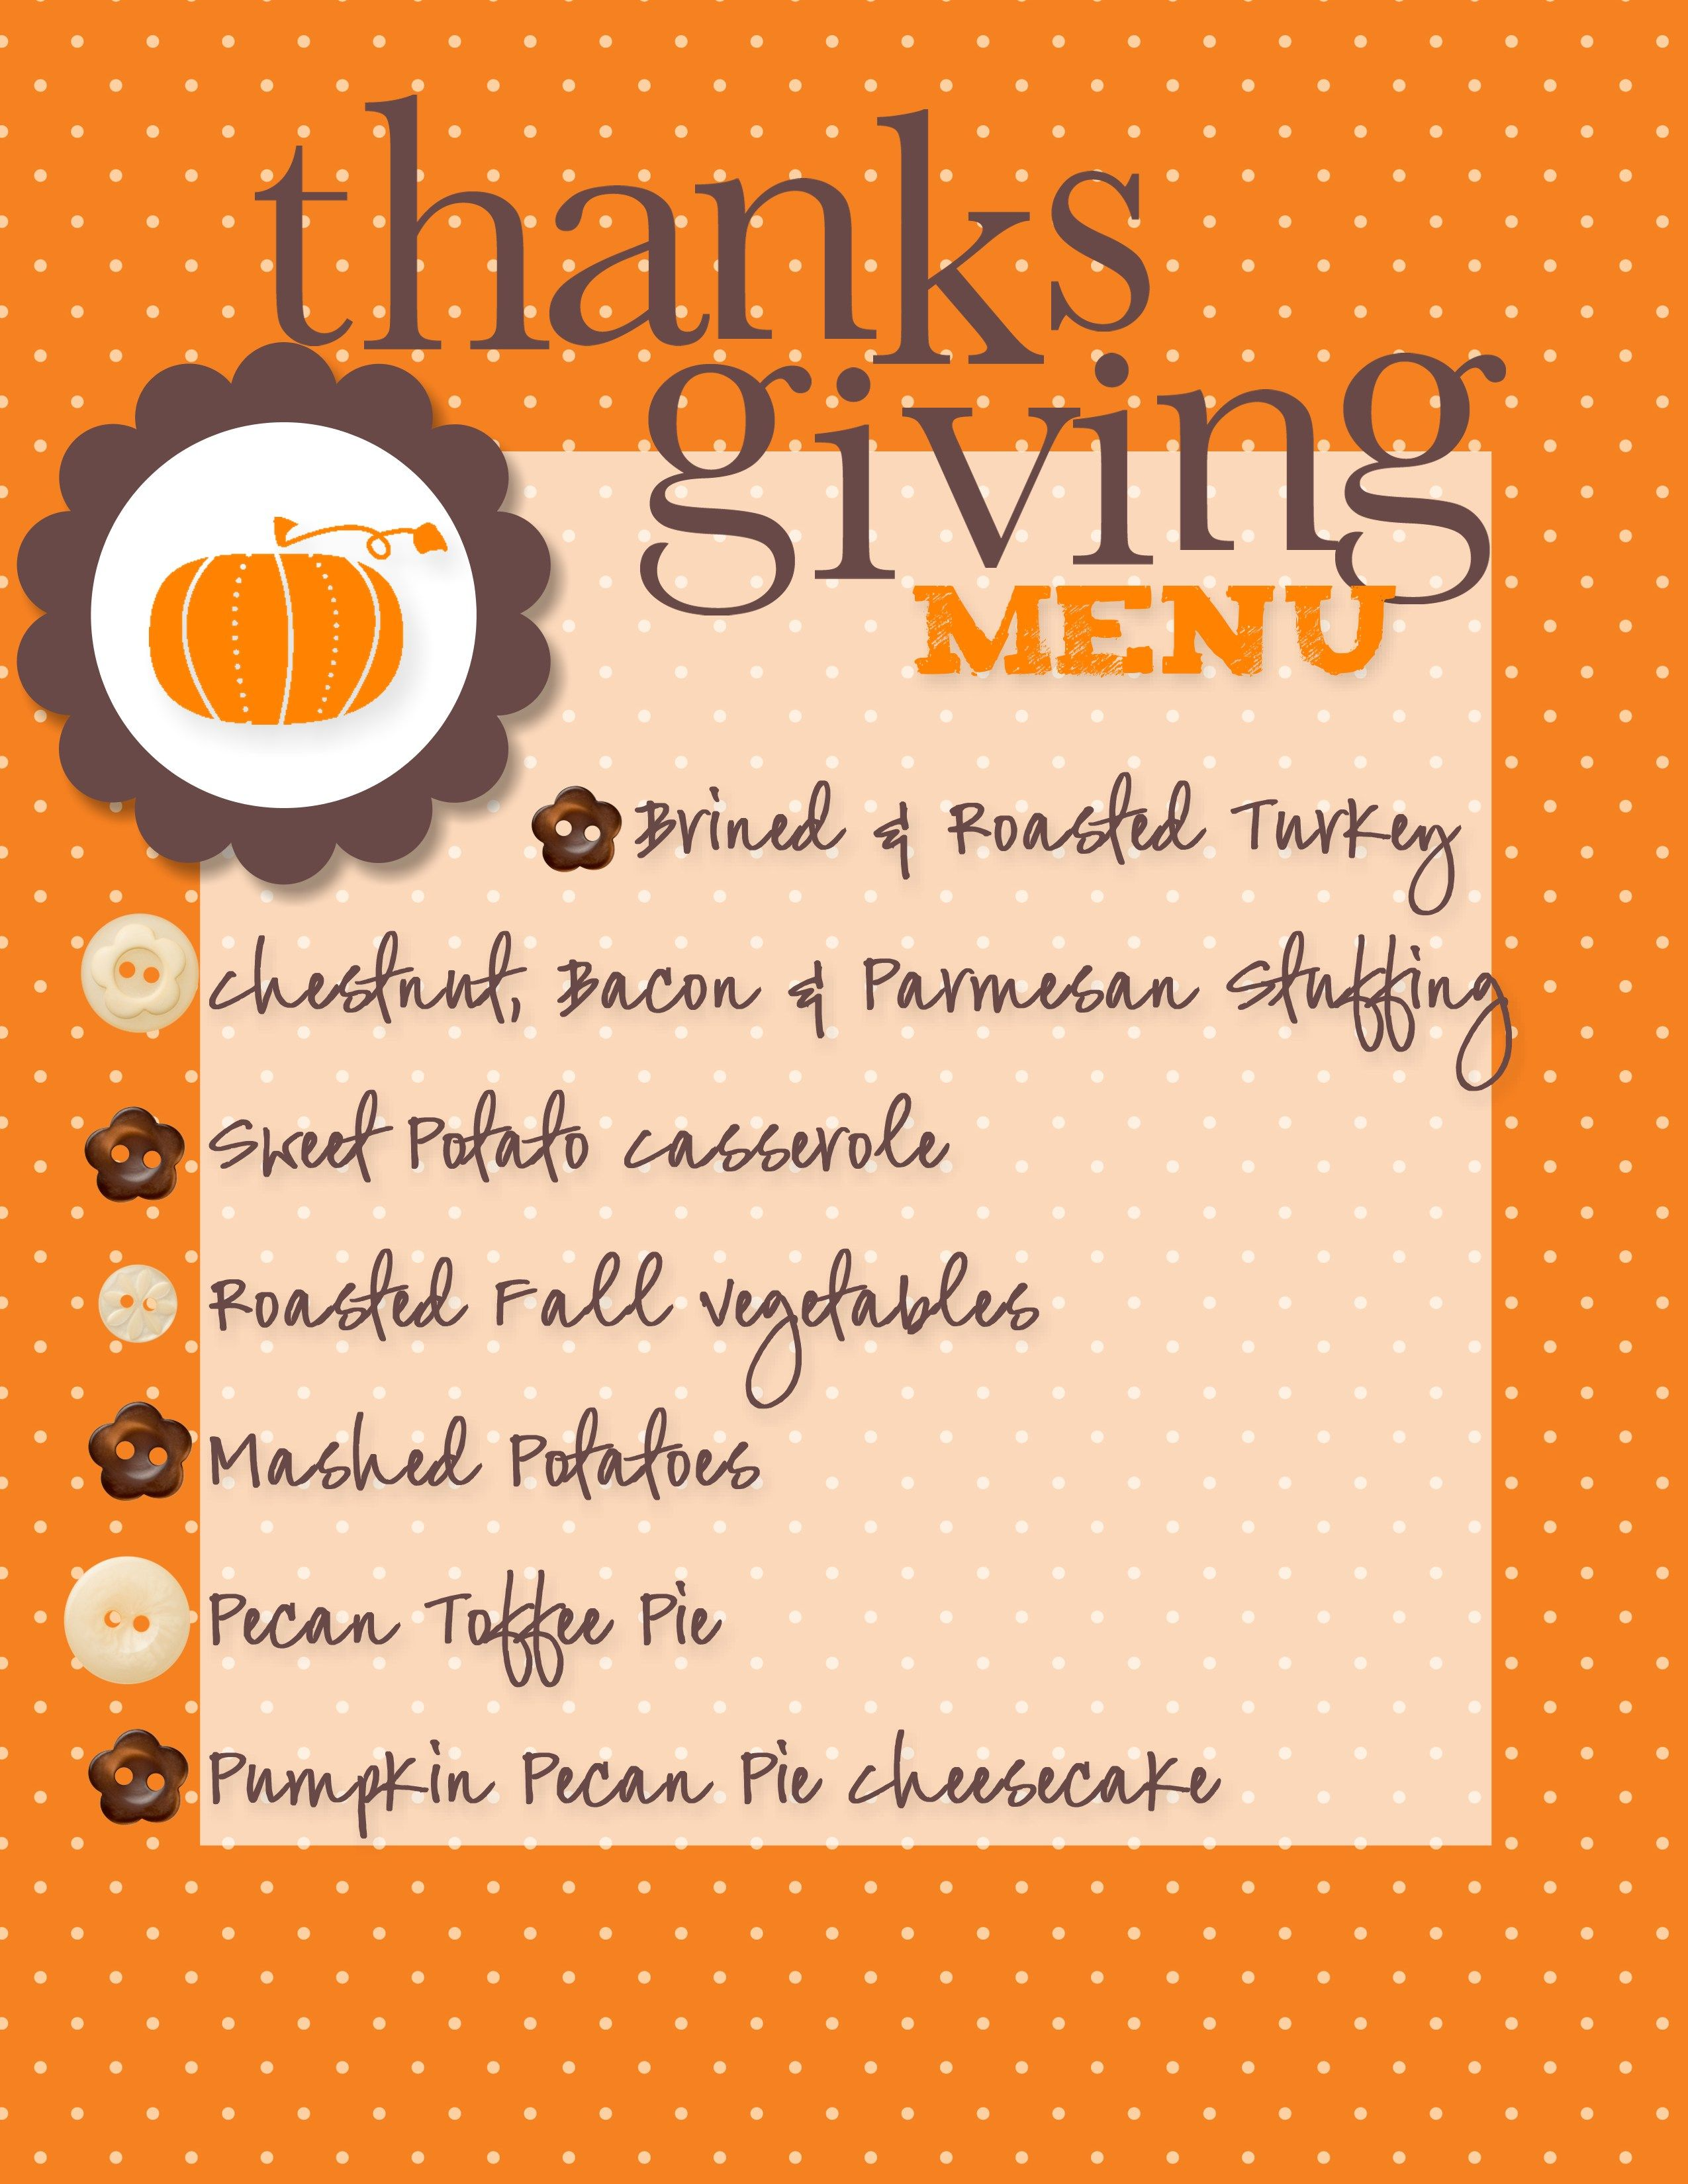 Another Thanksgiving Sample Menu